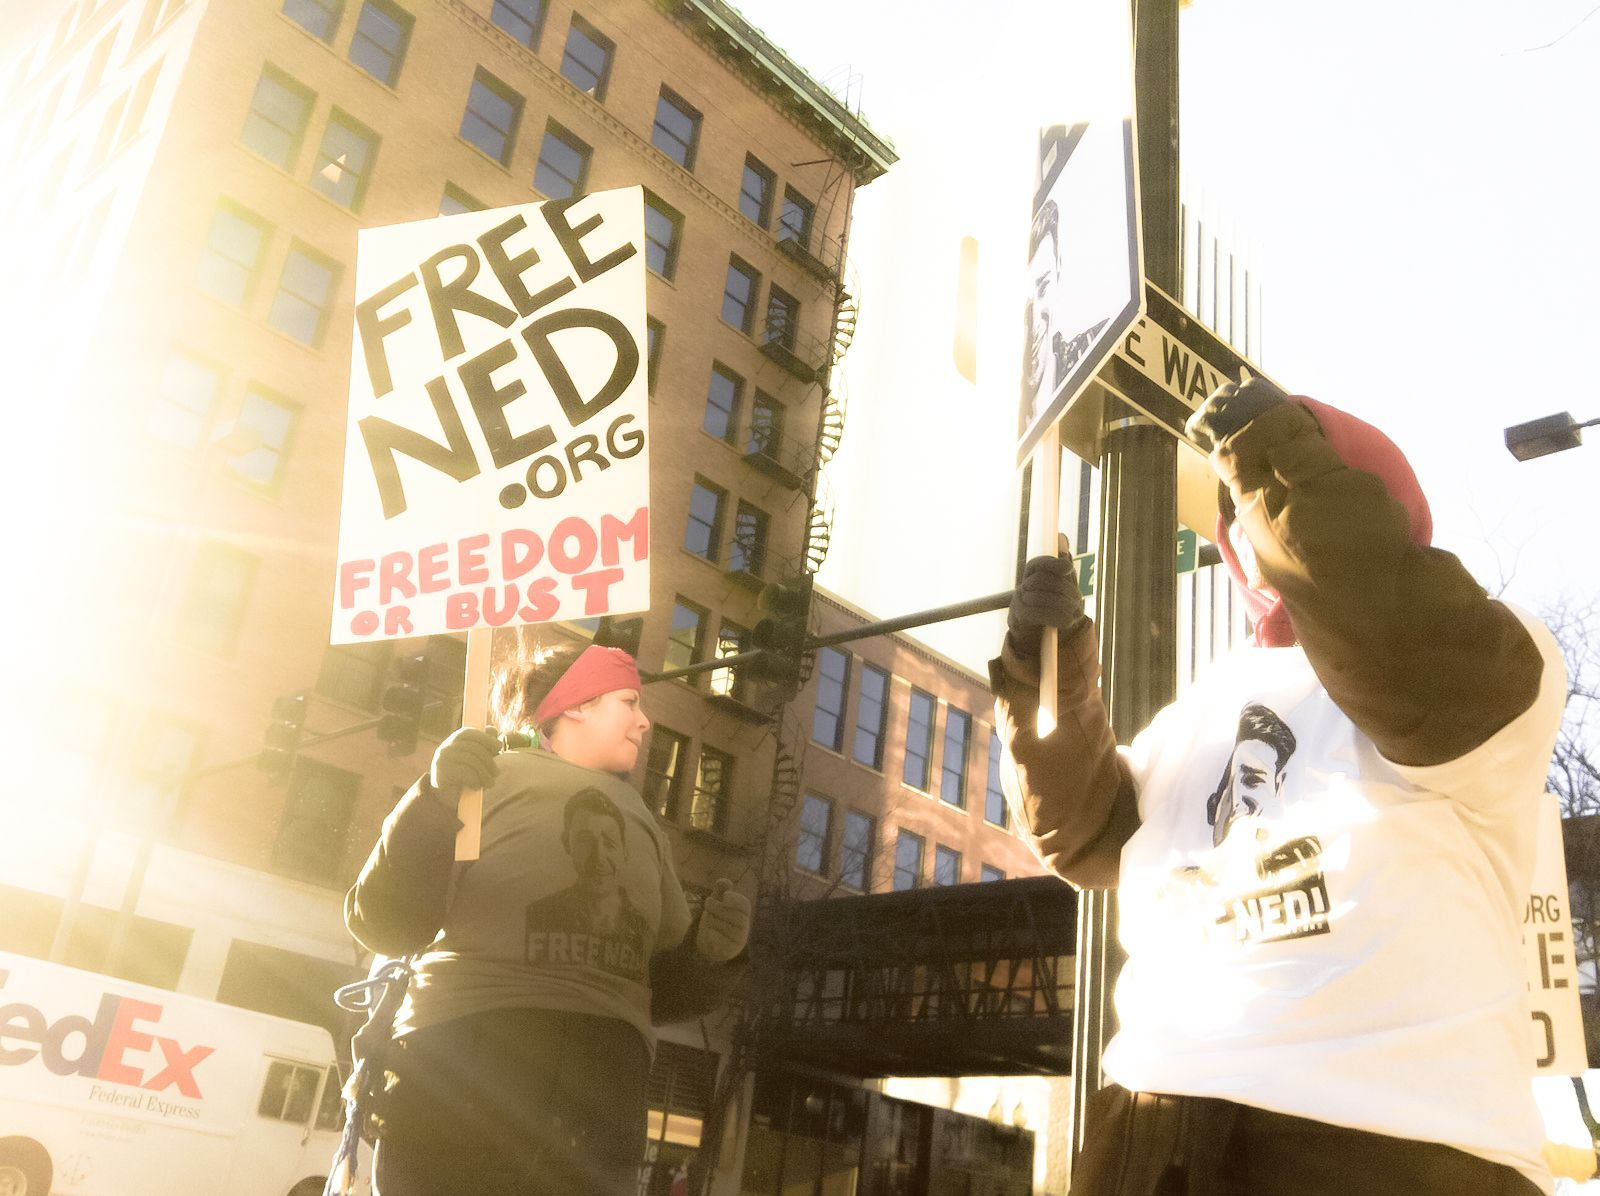 Freened Rally Photo From Cedarrapids Iowa Freened Org Photo